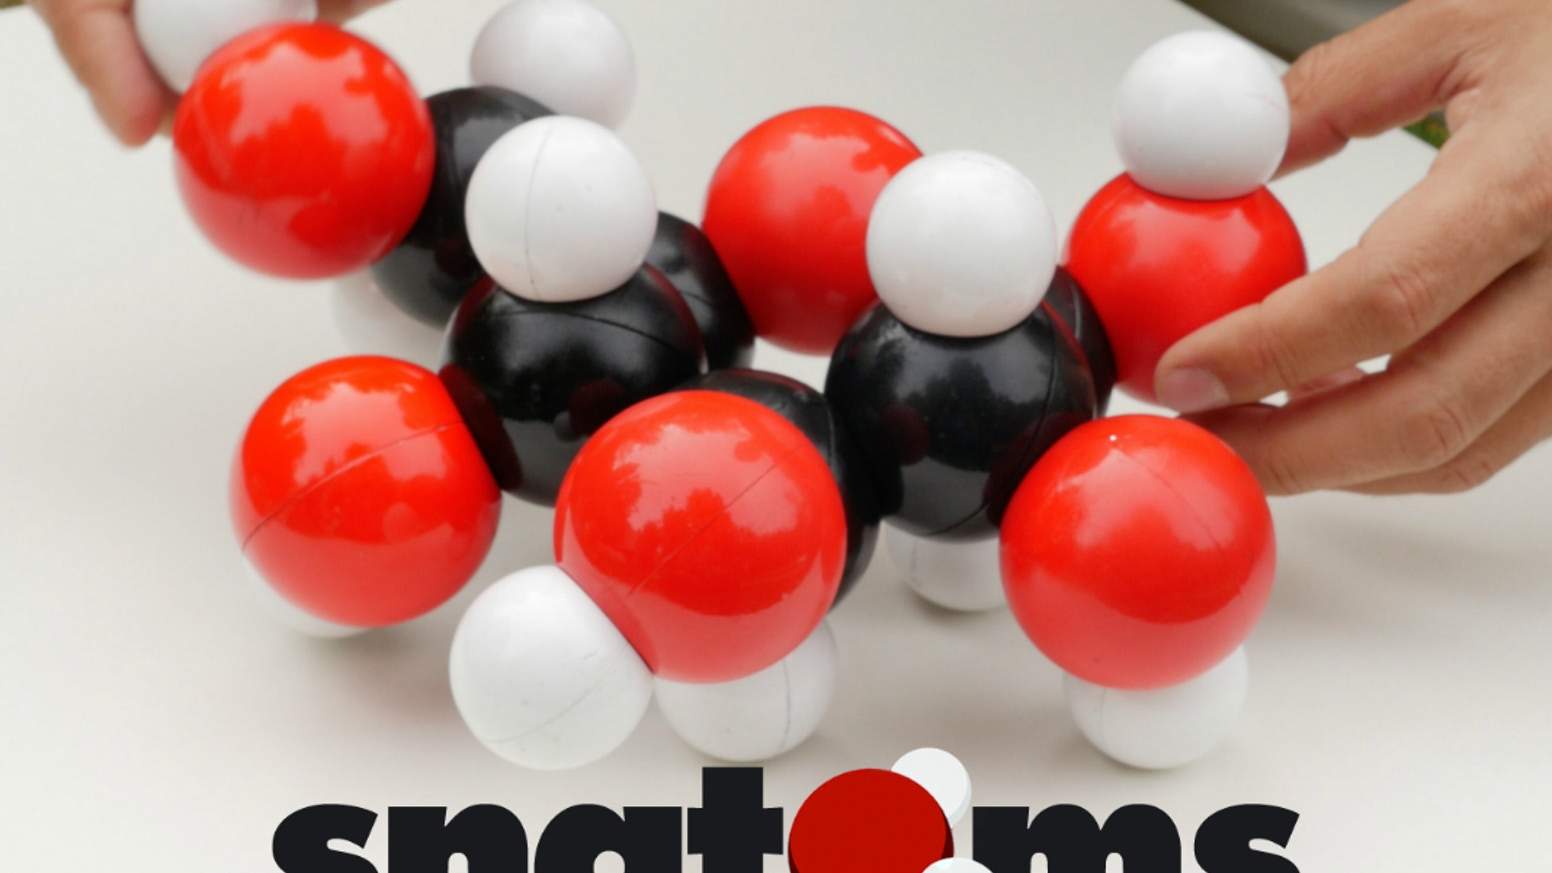 A molecular modeling kit with magnetic atoms that snap together. Make molecular models with attraction you can feel!